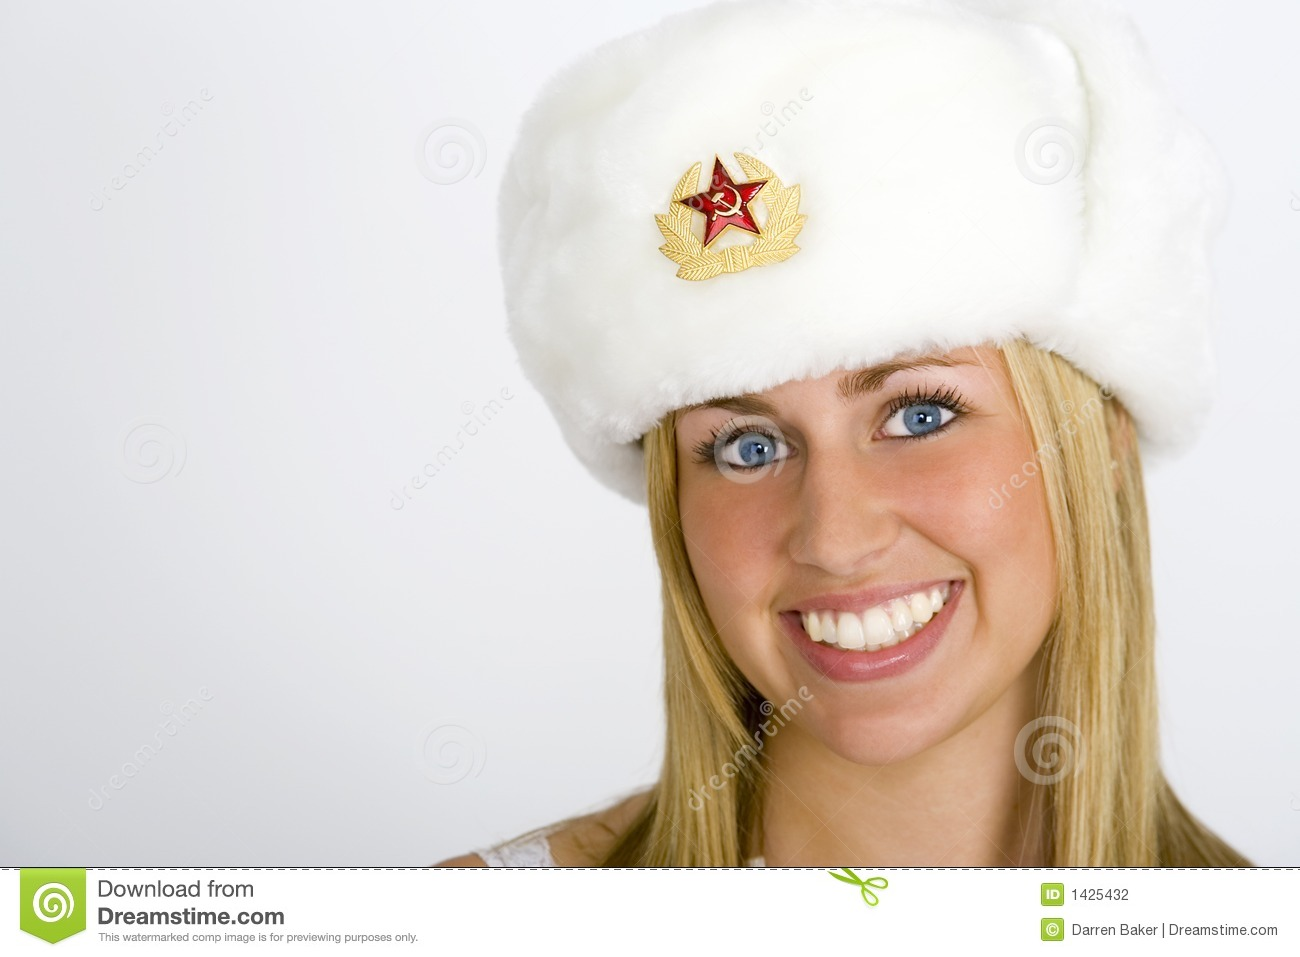 Russian or